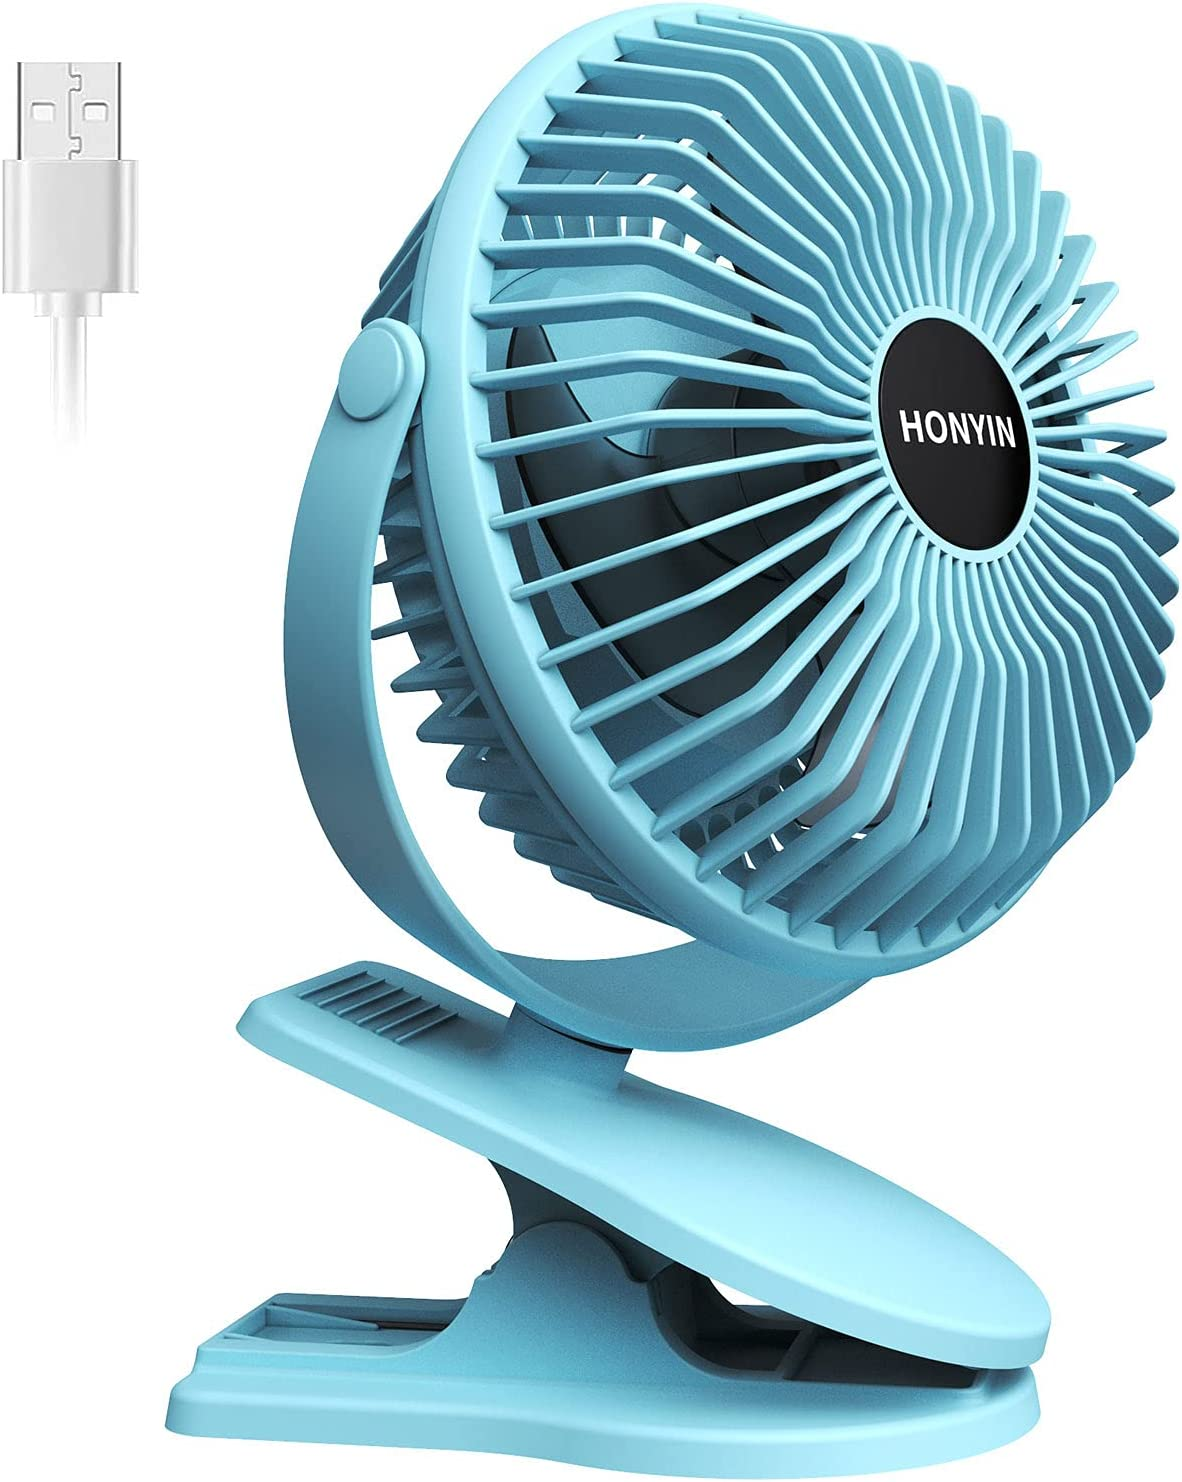 HONYIN 6 Inch Clip on Fan, 3 Speeds Small Fan with Strong Airflow, Portable USB Clip & Desk Fan with Sturdy Clamp -Quiet operation for Office Dorm Bedroom Stroller